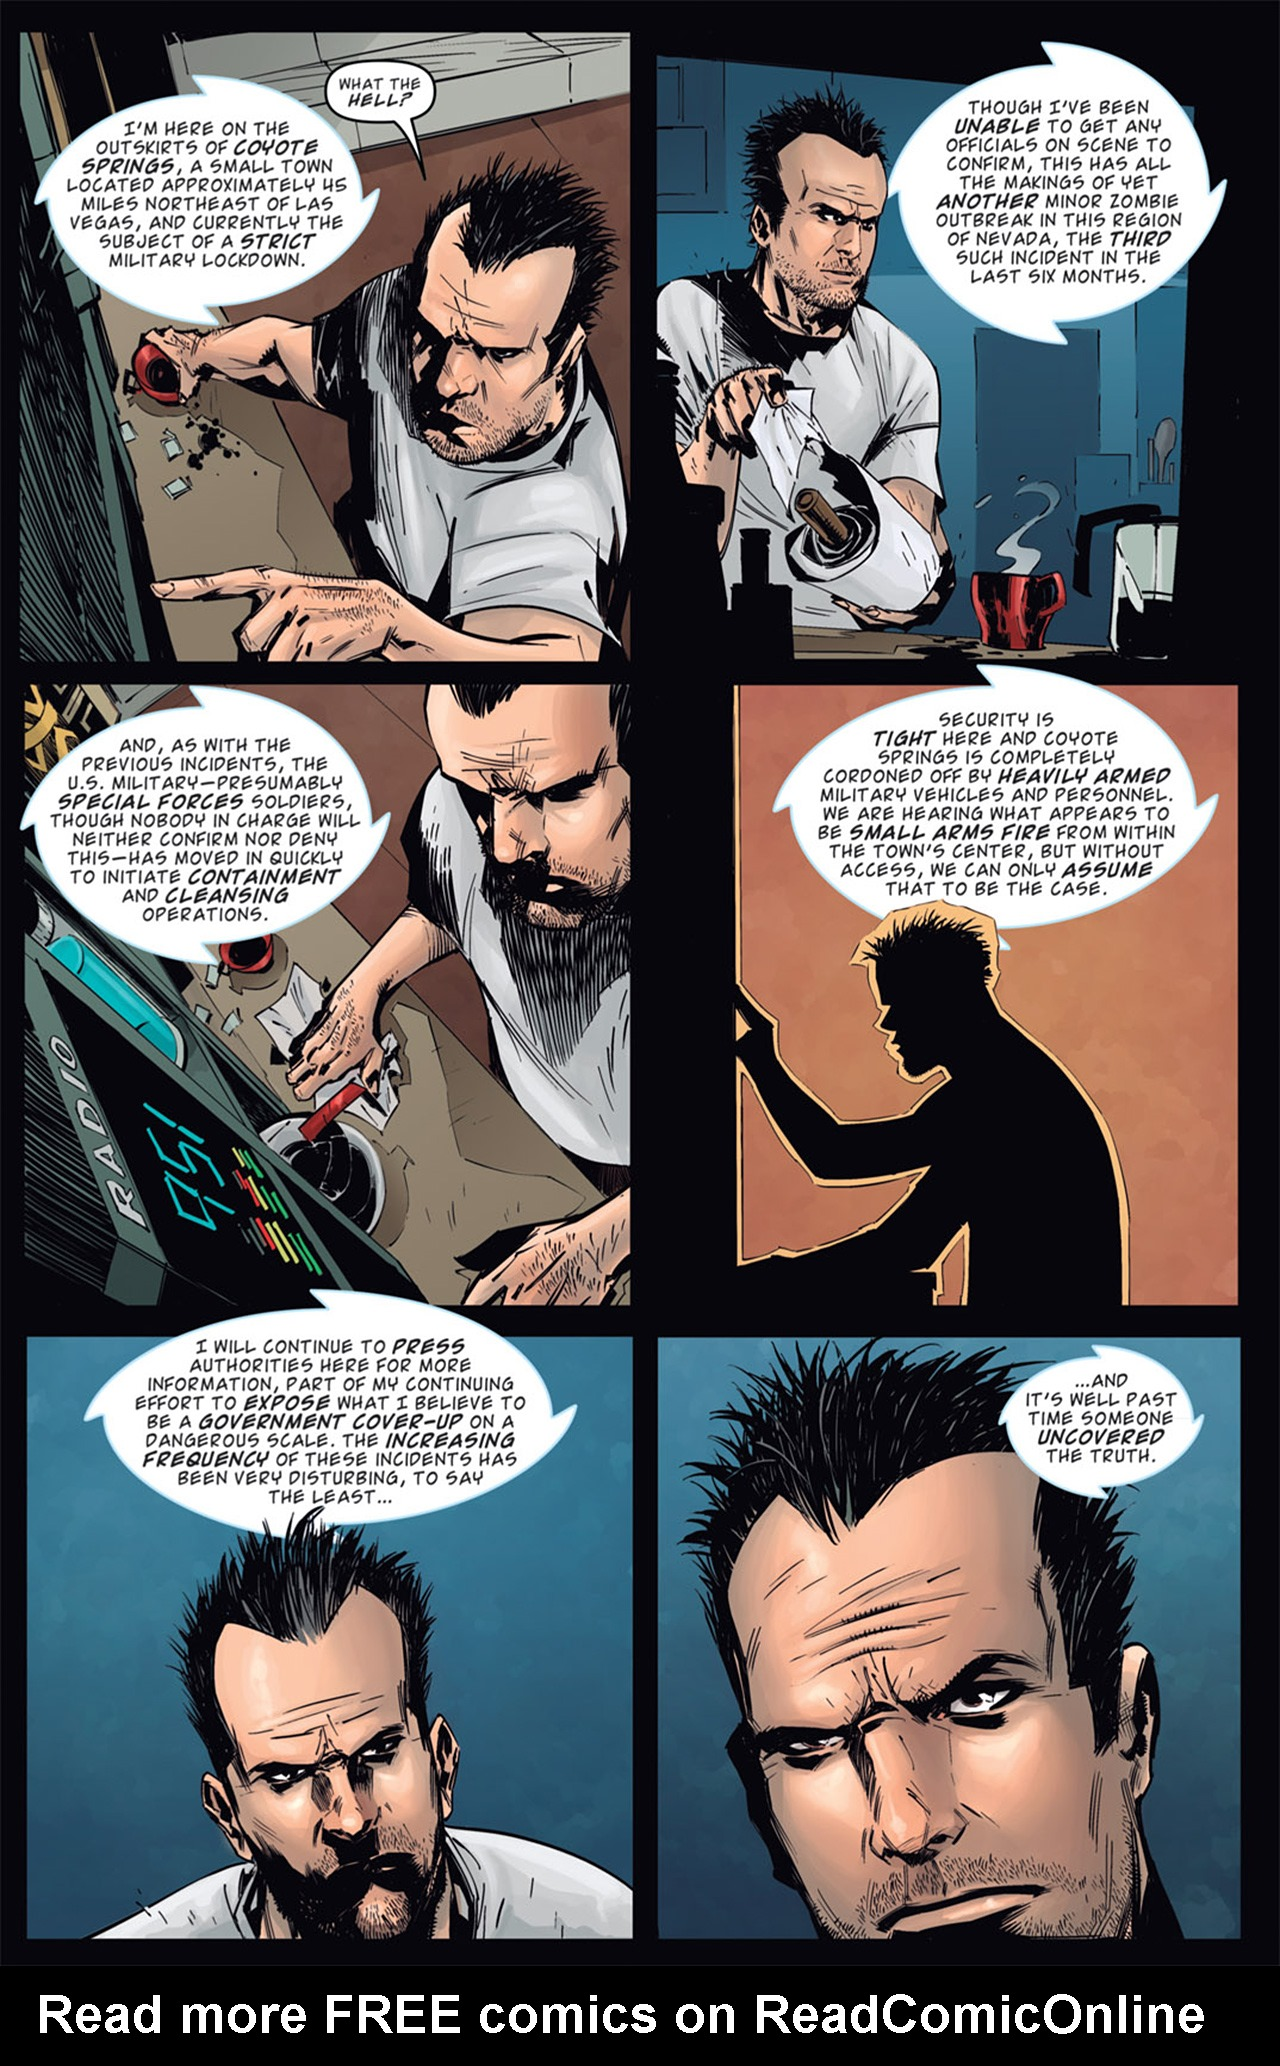 Read online Dead Rising: Road to Fortune comic -  Issue # TPB - 19